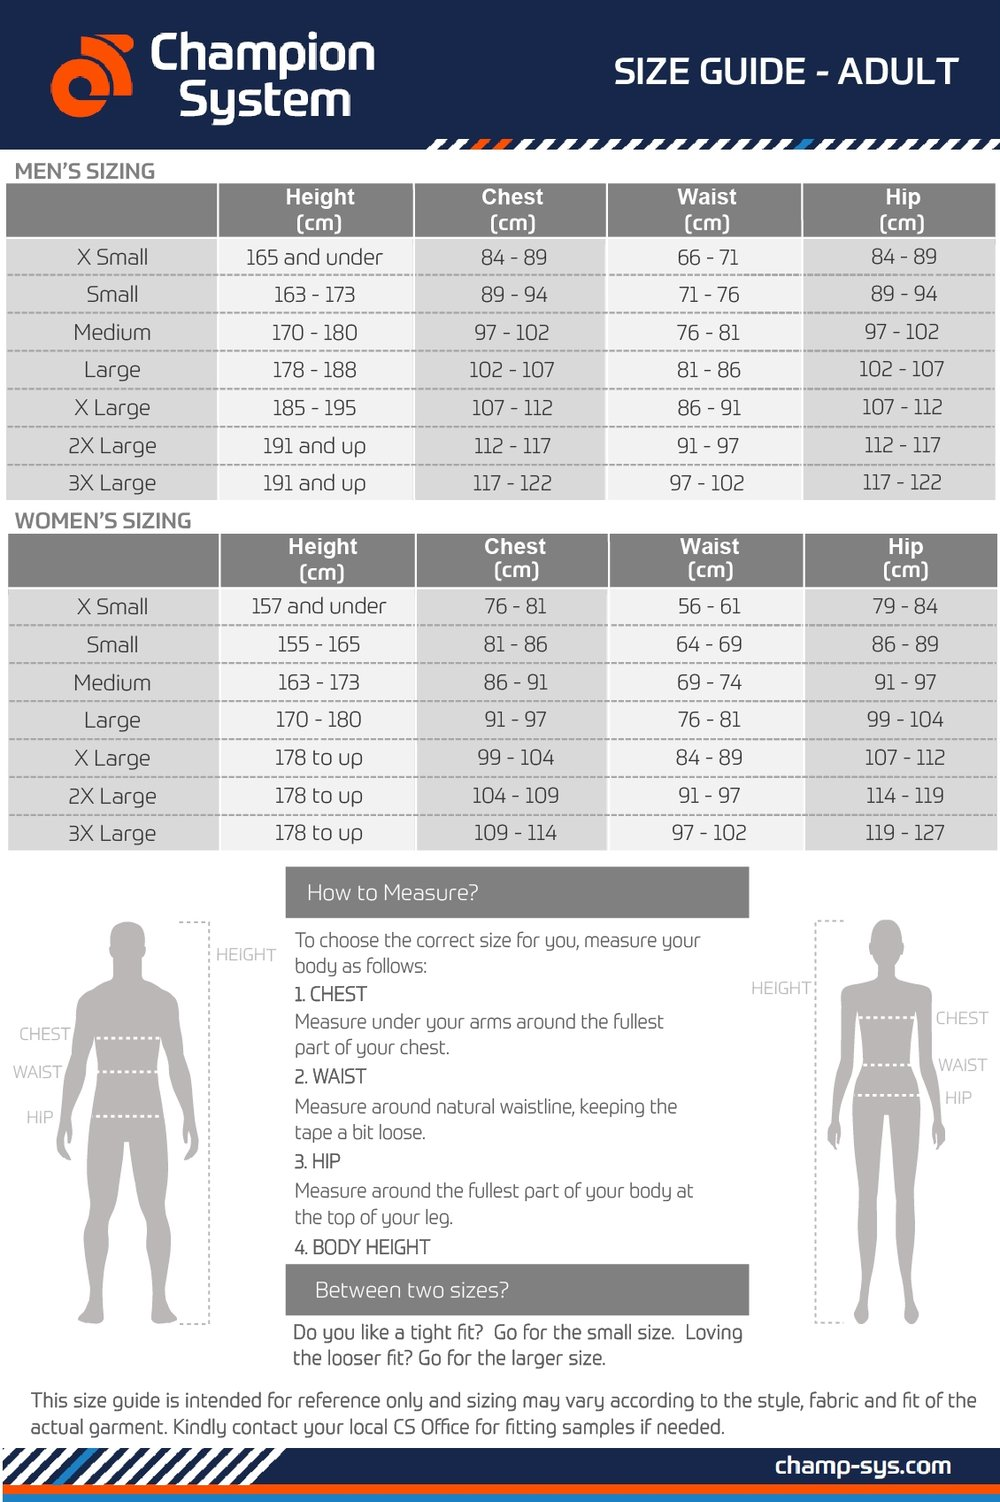 CS_SIZECHART_2016_cm_adult-1.jpg